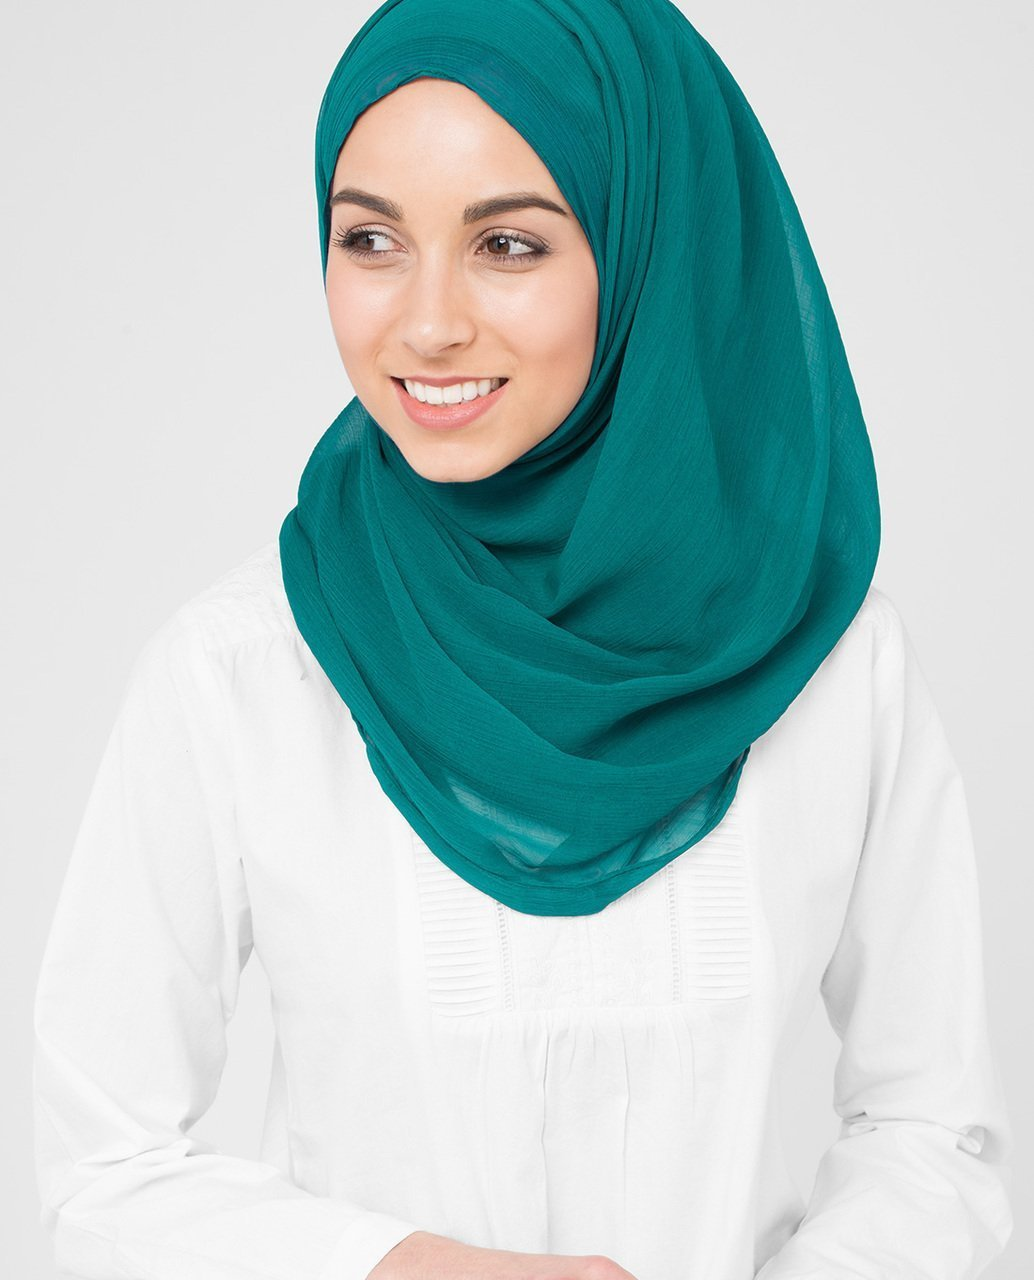 Chiffon Hijab Scarf Shawl Headcover In Harbor Blue Color Maxi Poly